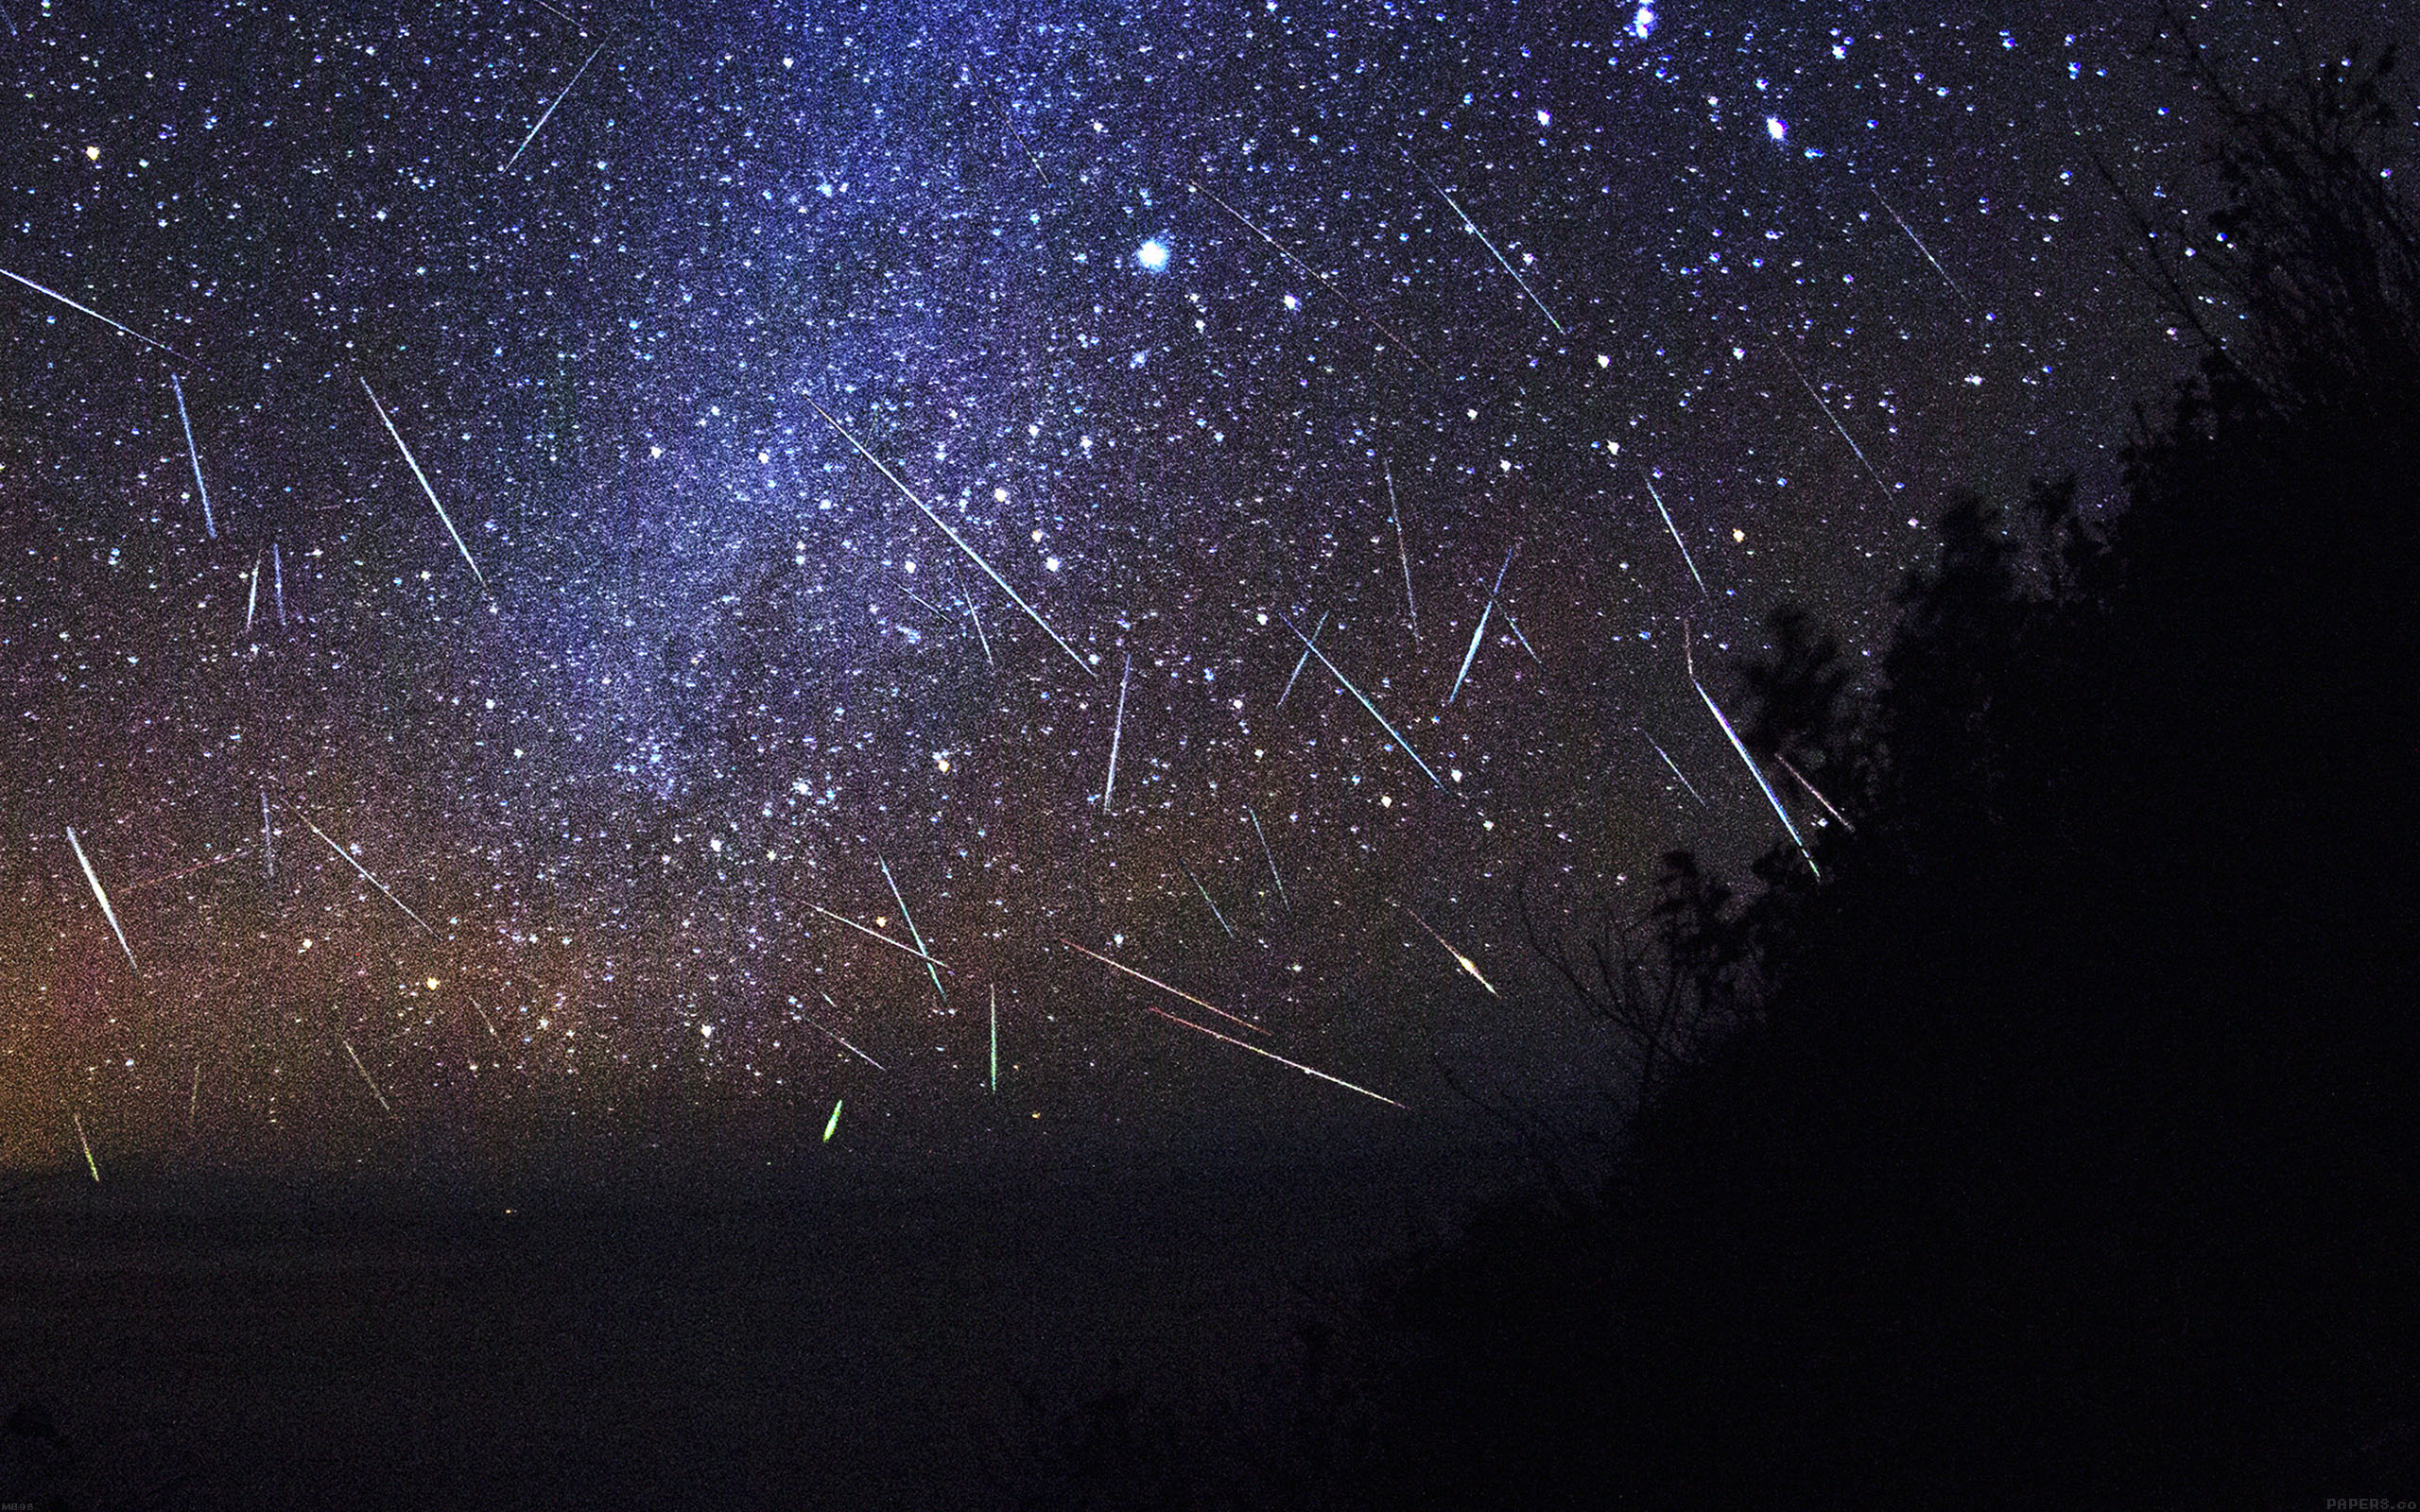 mb98-wallpaper-meteor-shower-sky-night - Papers.co  mb98-wallpaper-...